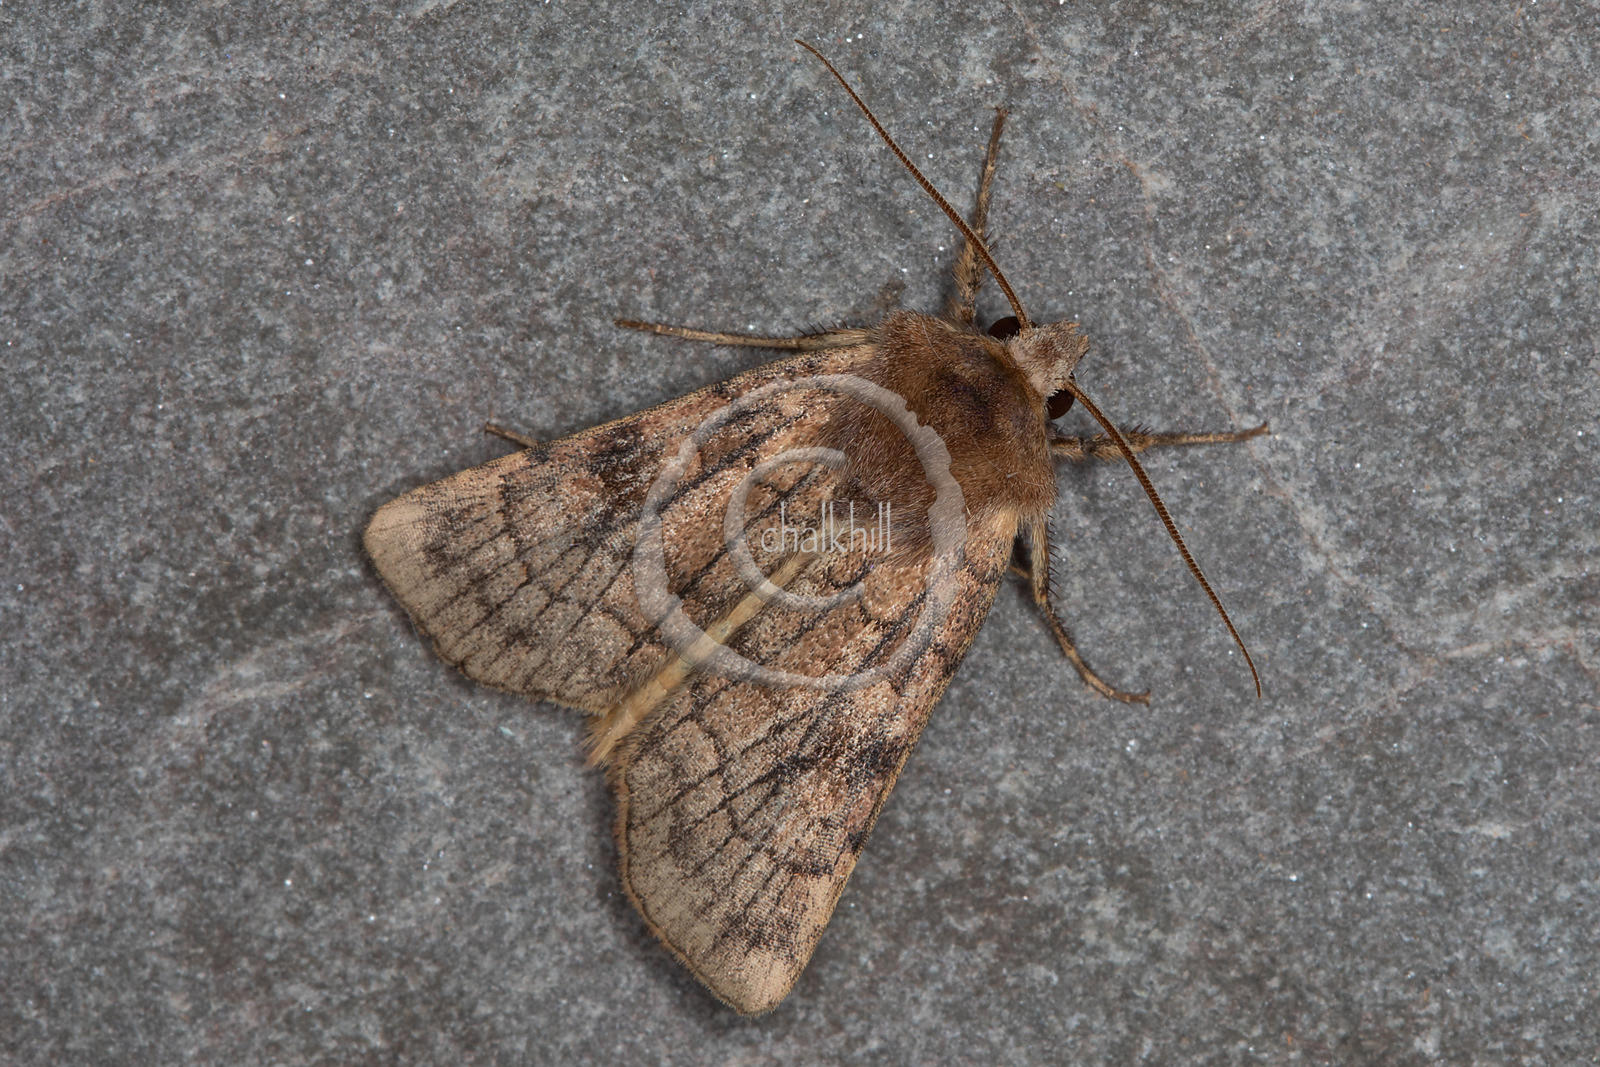 [Xestia sexstrigata [73.358] Six-striped Rustic]-[GBR-Flatford Mill]